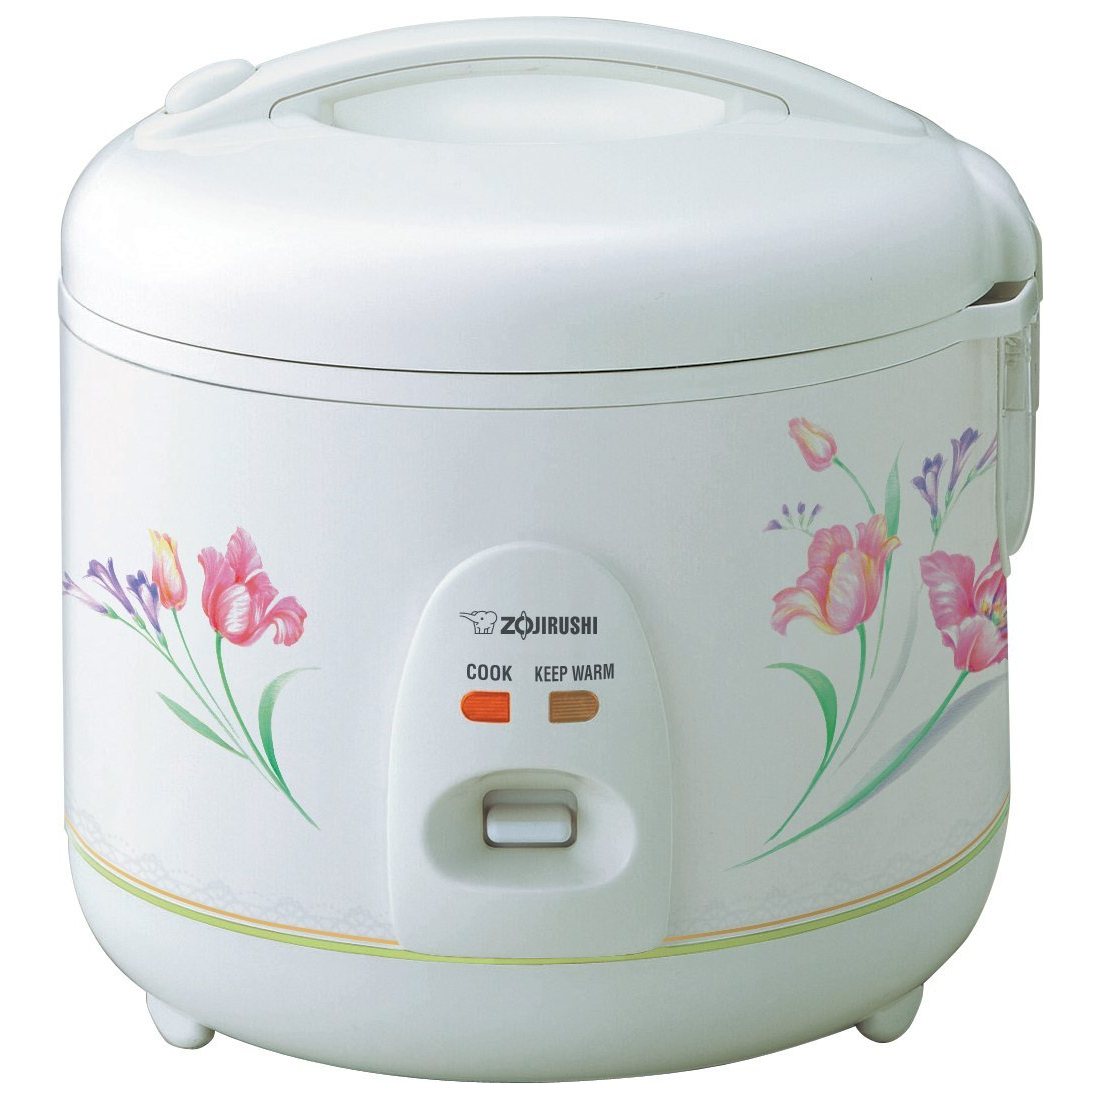 Zojirushi White Ballerina 5.5 Cup Automatic Rice Cooker